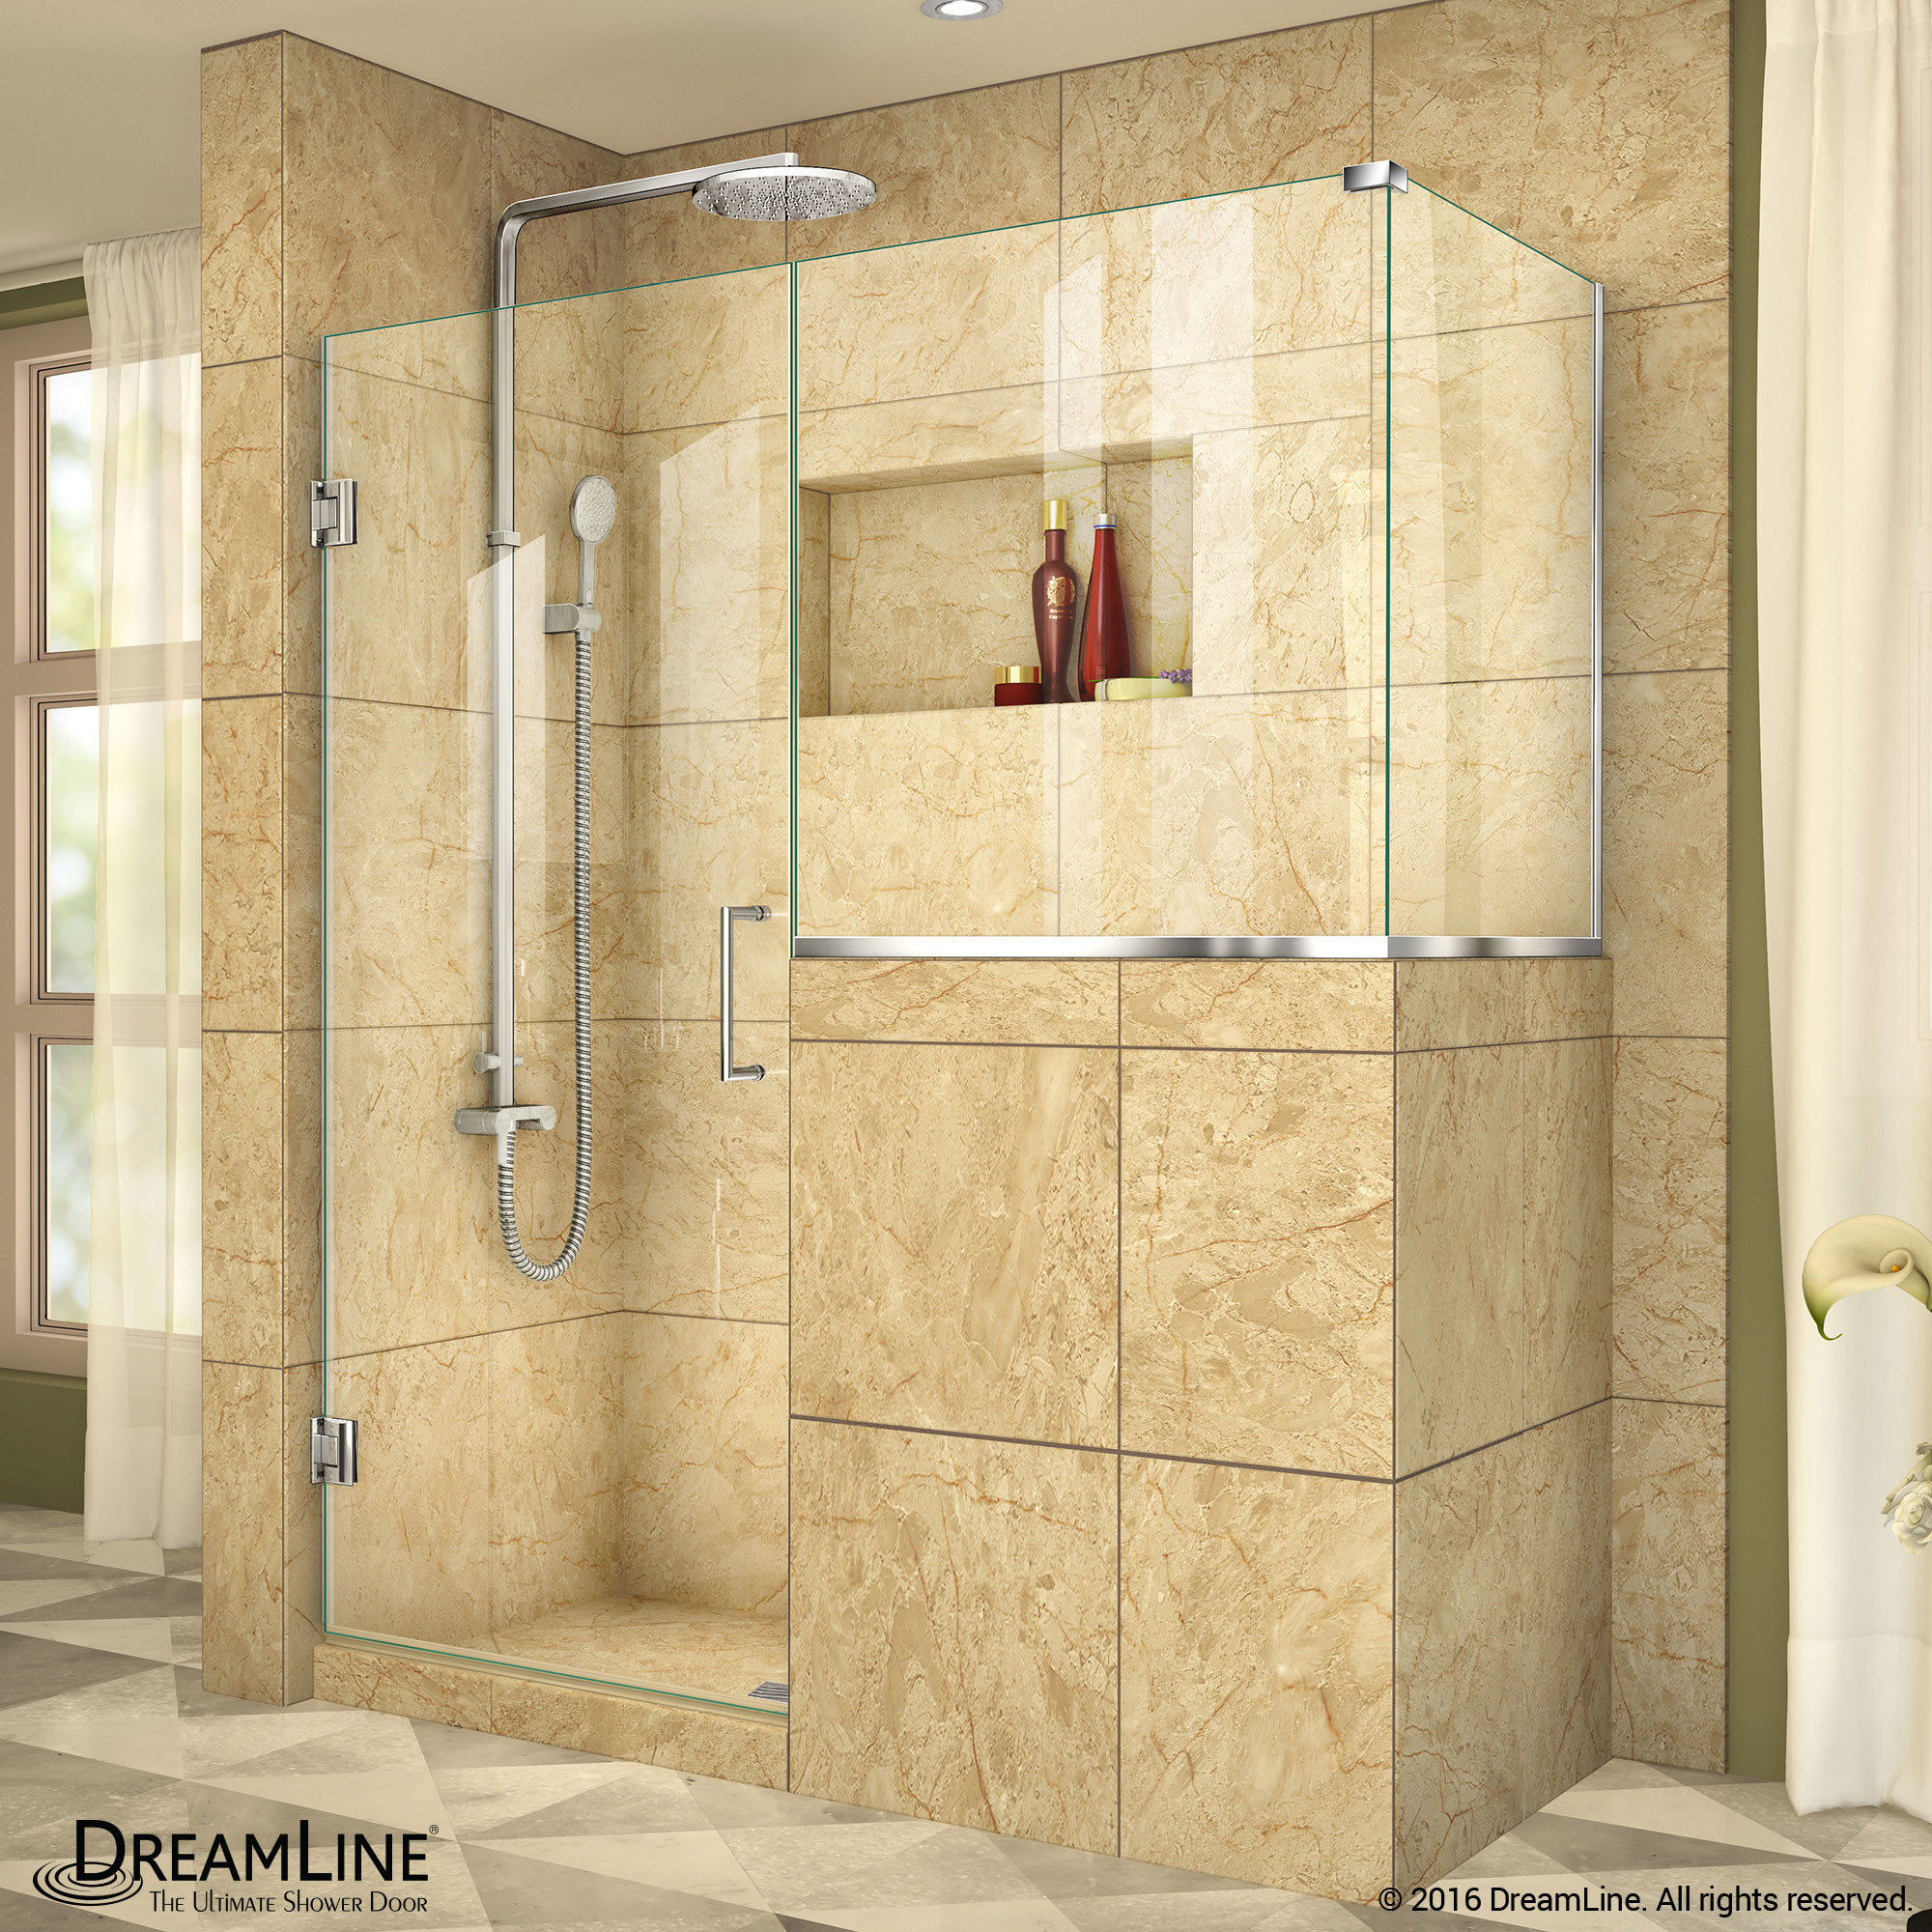 "DreamLine SHEN-2428303630-01 Unidoor Plus 58 x 30.375 x 72"" Hinged Shower Enclosure In Chrome Finish"